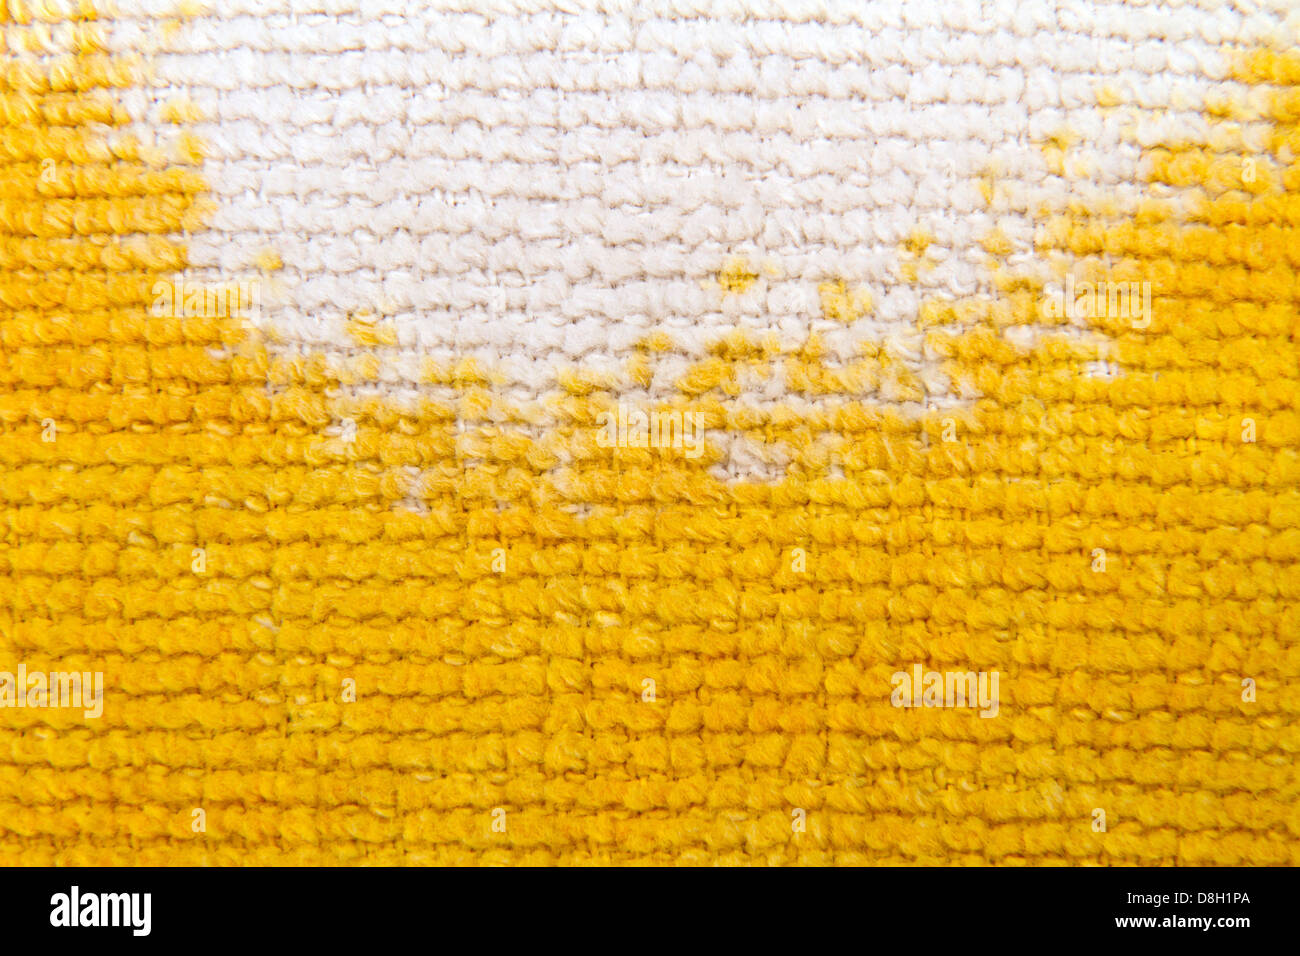 Image background texture of knitting wool - Stock Image